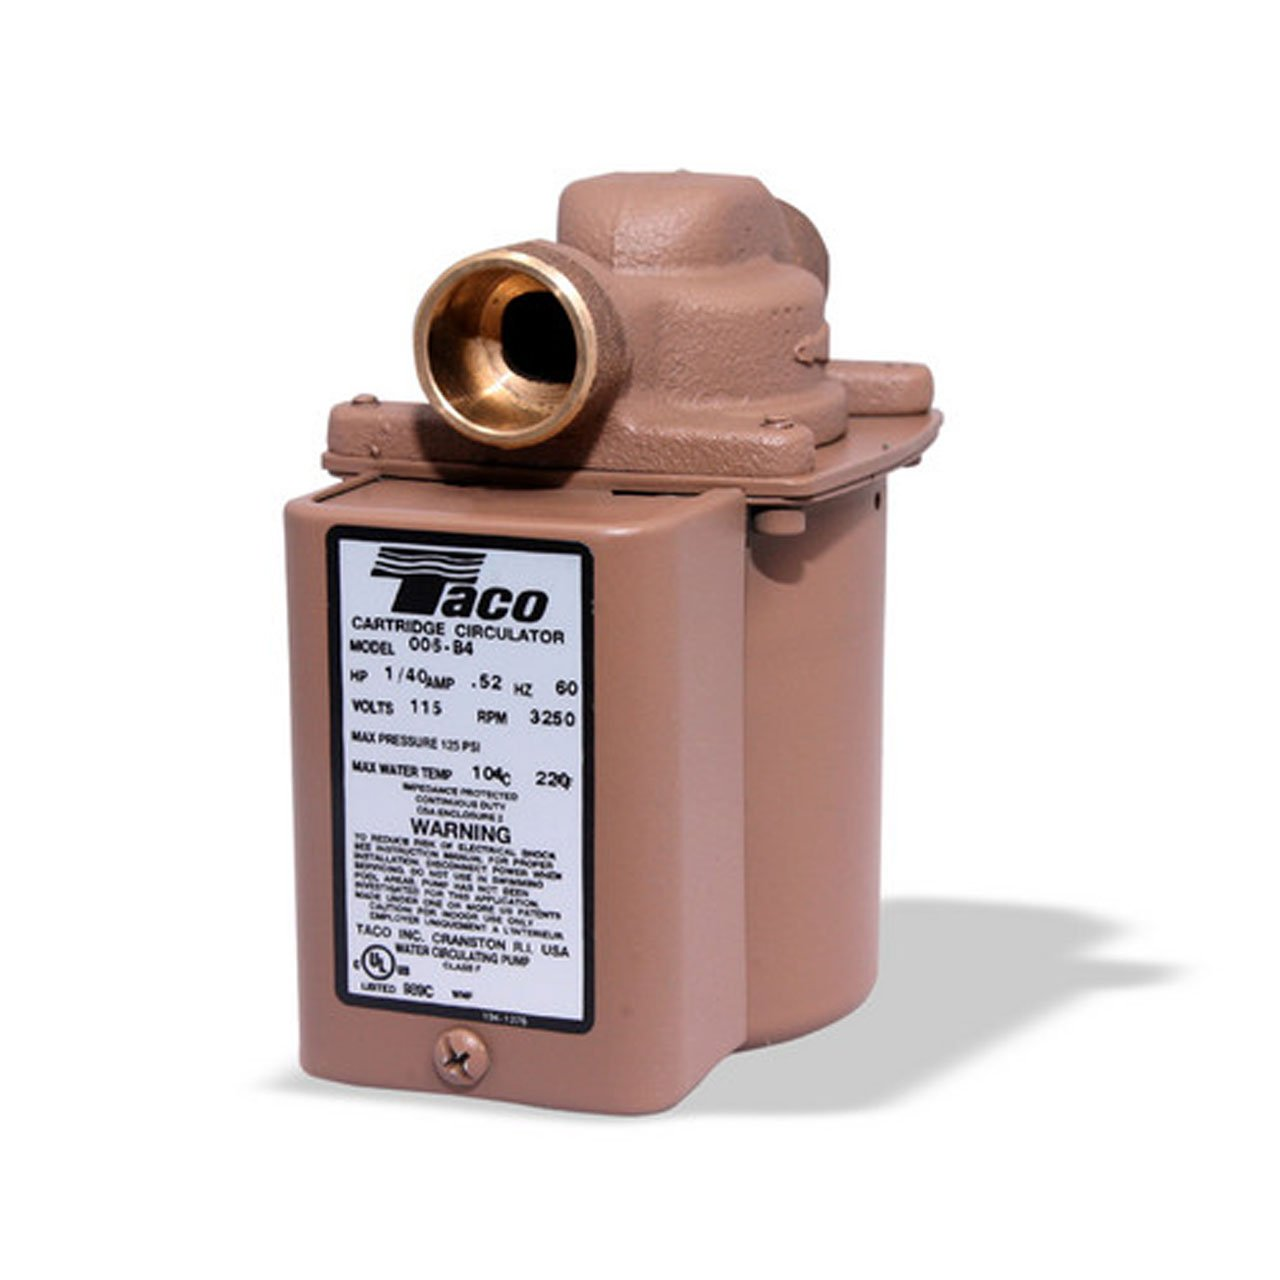 Taco 006-B4-1PNP Bronze Circulator Pump 3/4-Inch Sweat with Line Cord by Taco